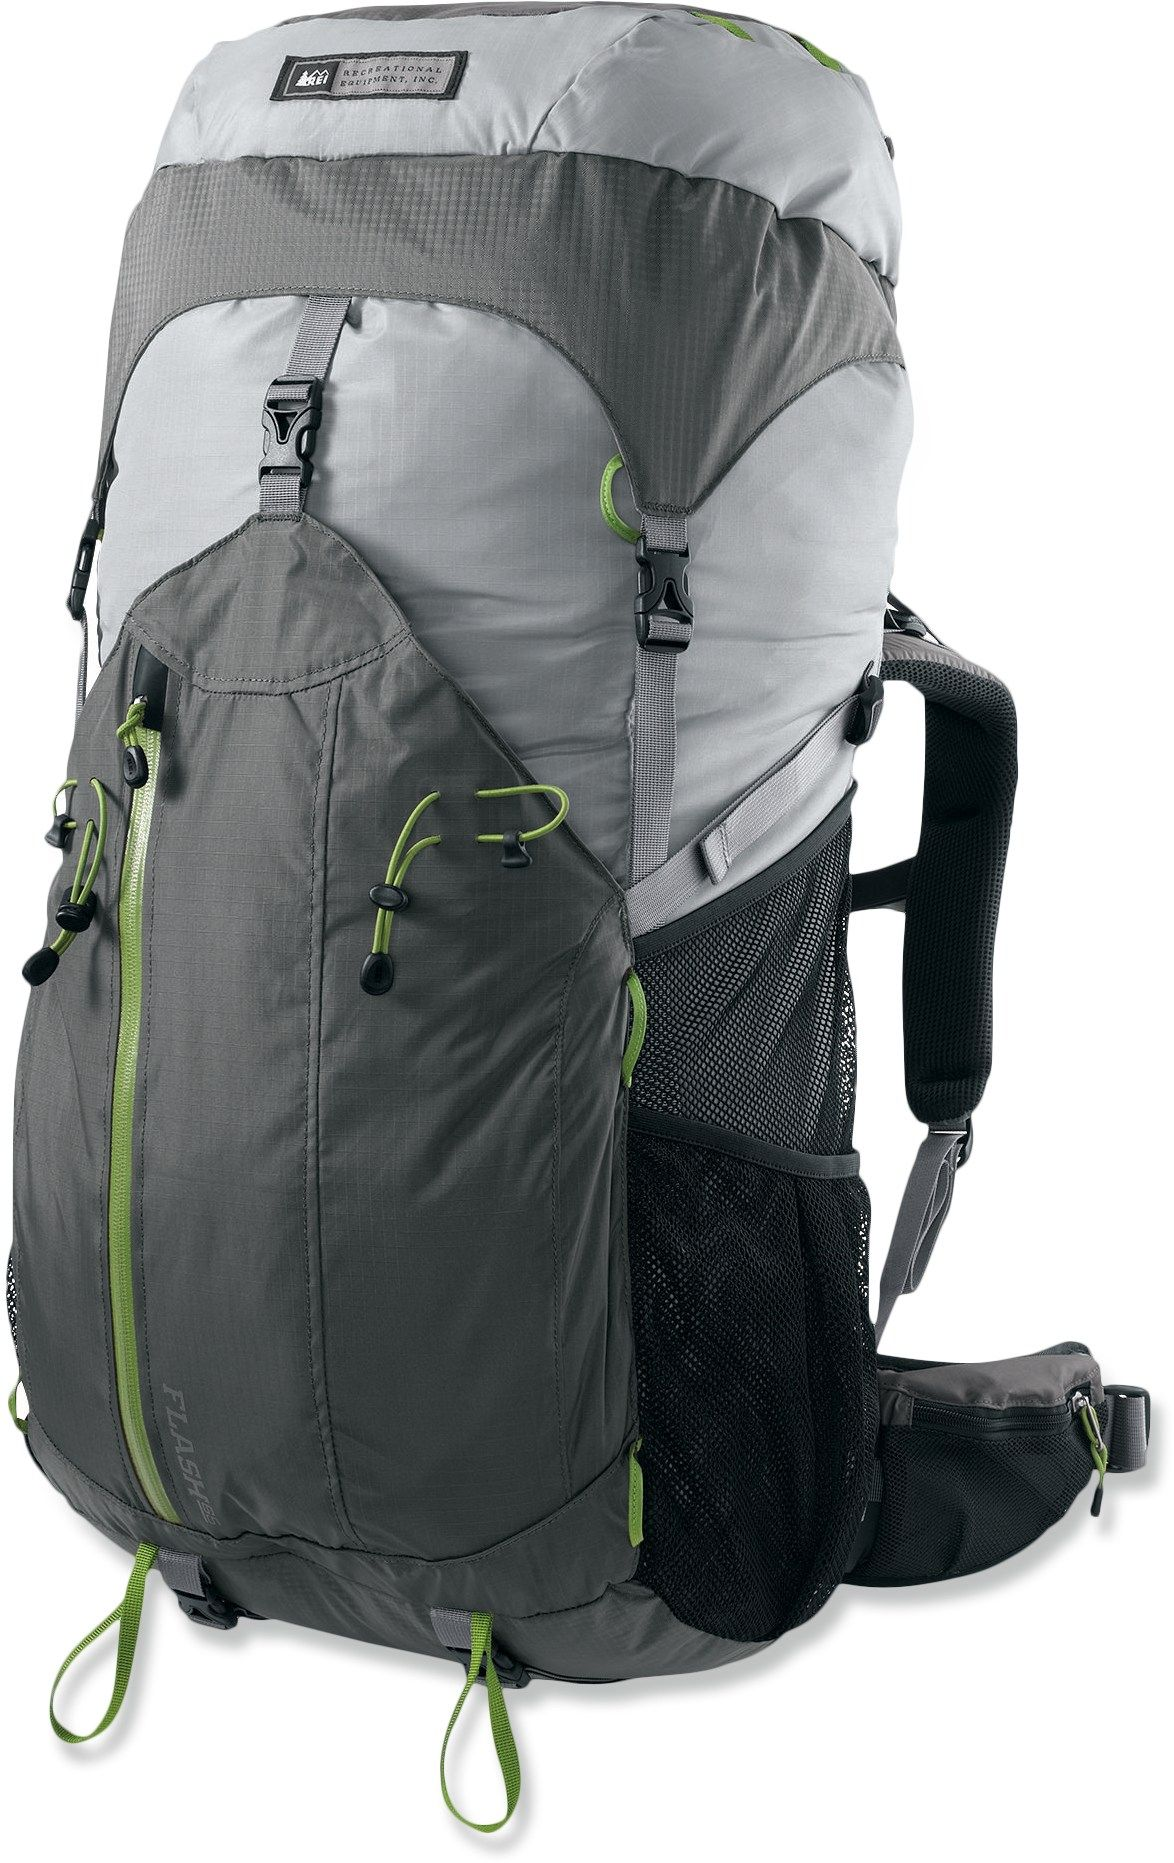 c13ebebbe697 REI Flash 65 Pack (Women s) for  105.73 at REI Outlet--this is a  handsome-looking backpack  3